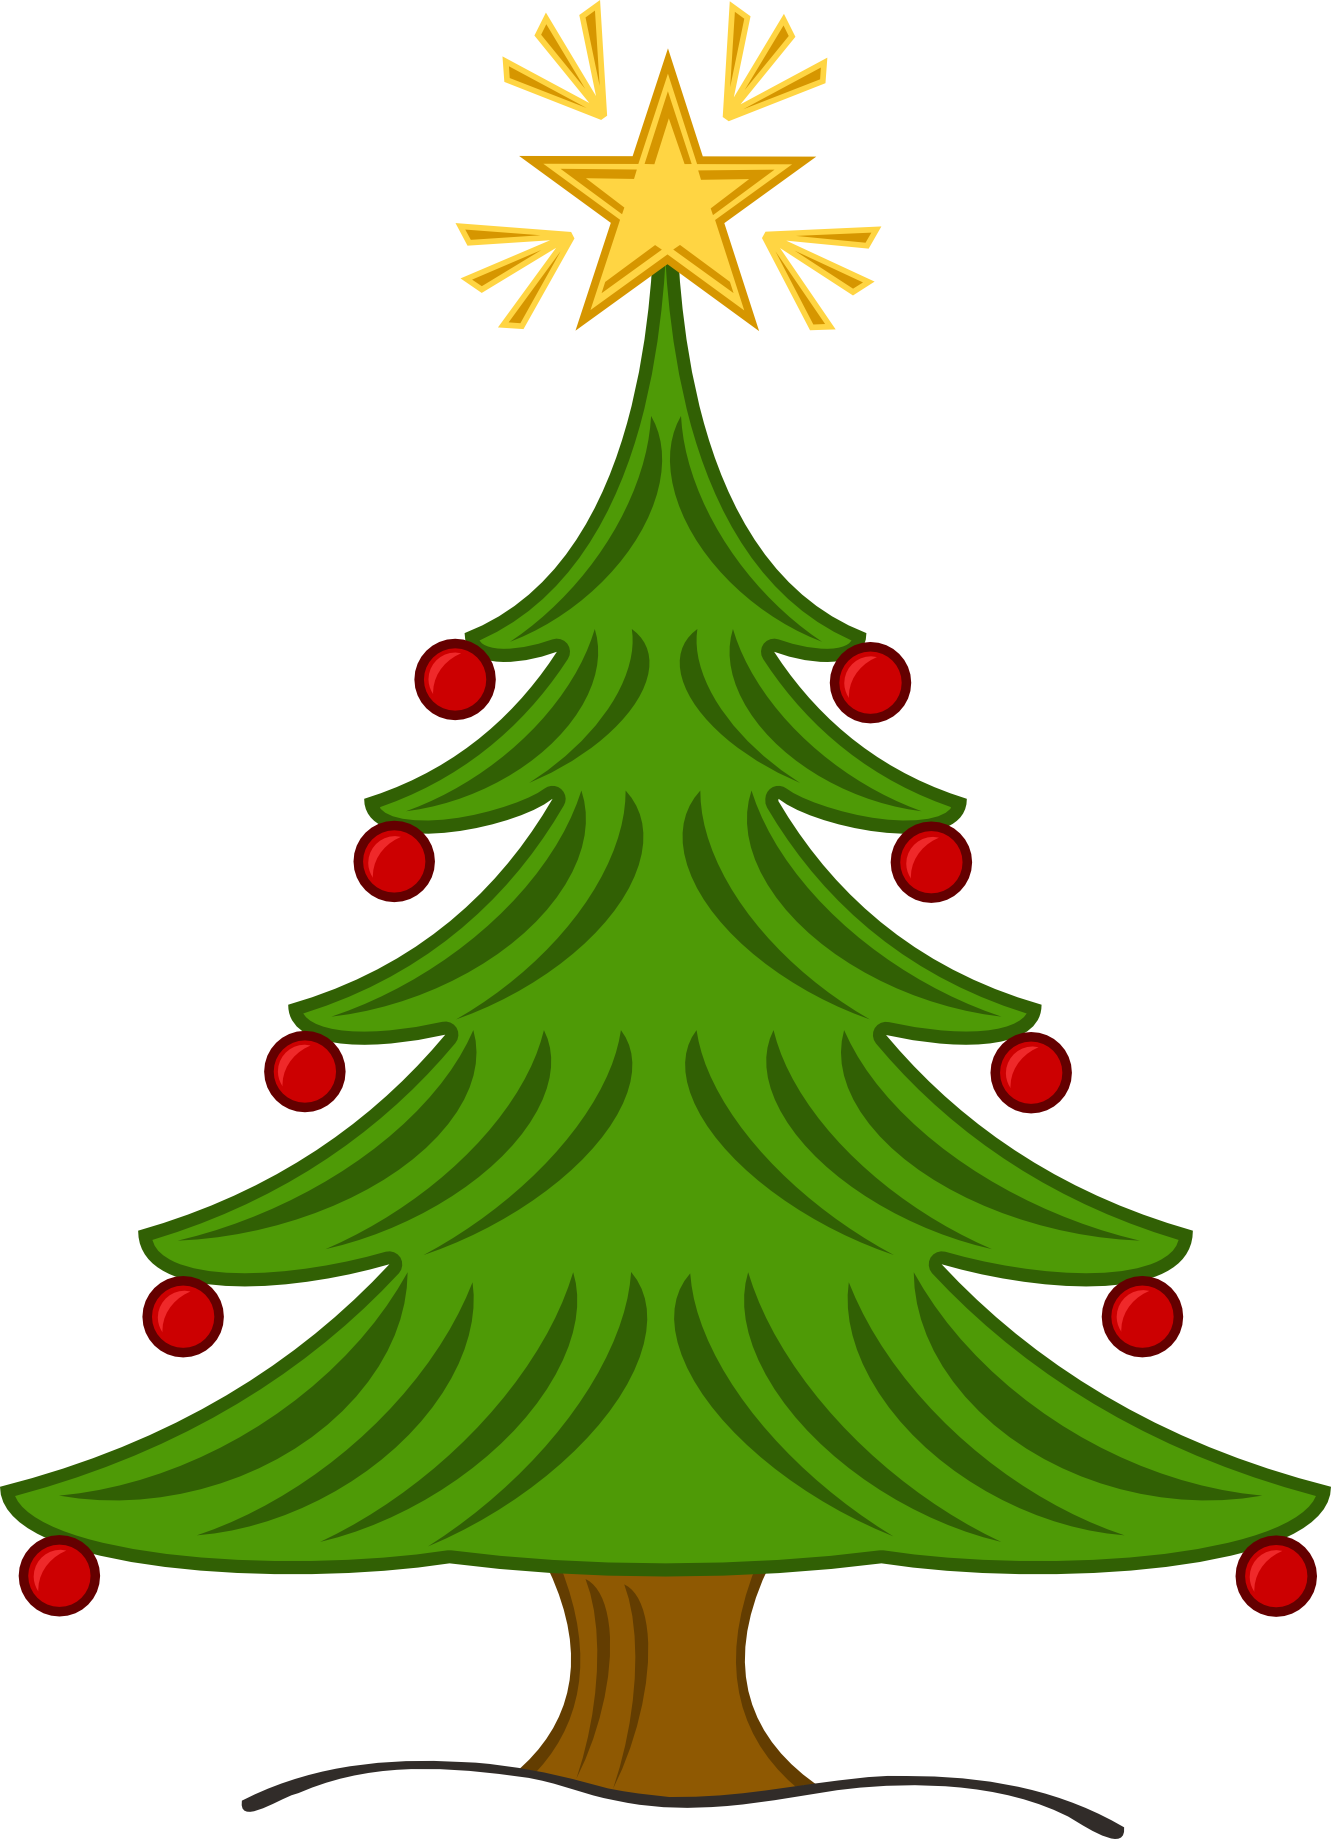 Cajun christmas tree clipart.